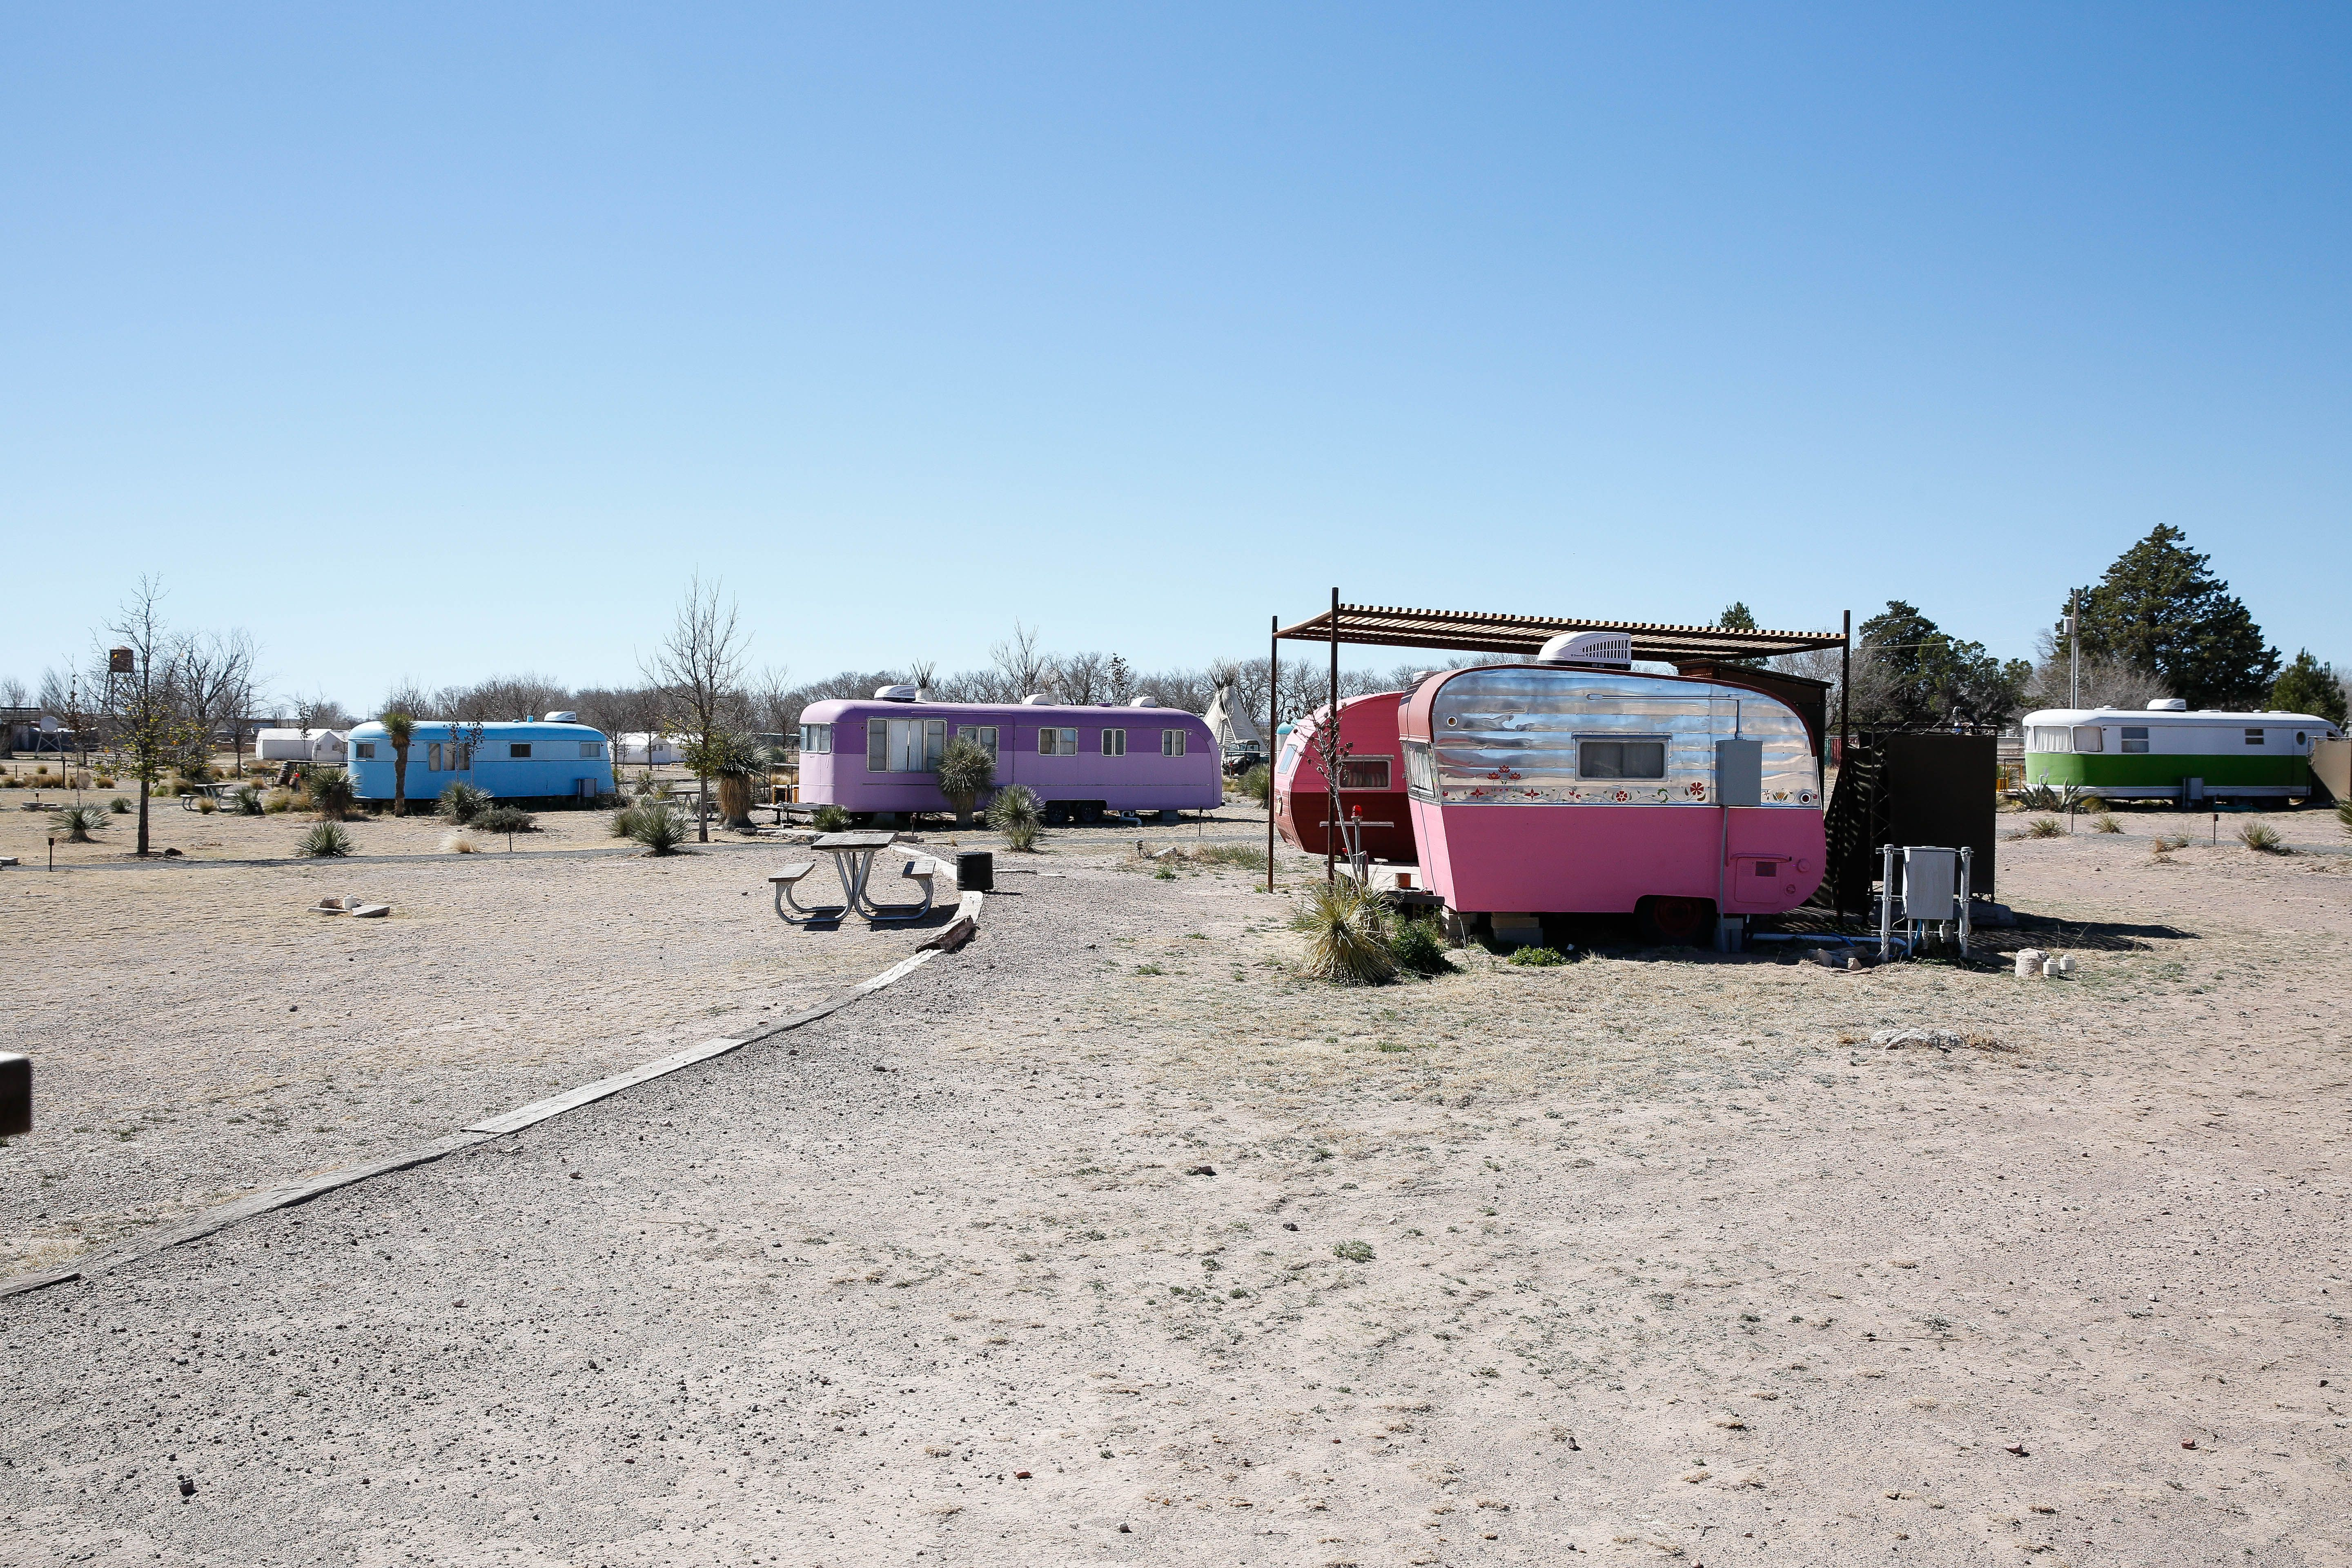 El Cosmico, the Gorgeous Trailer-Themed Hotel in Marfa